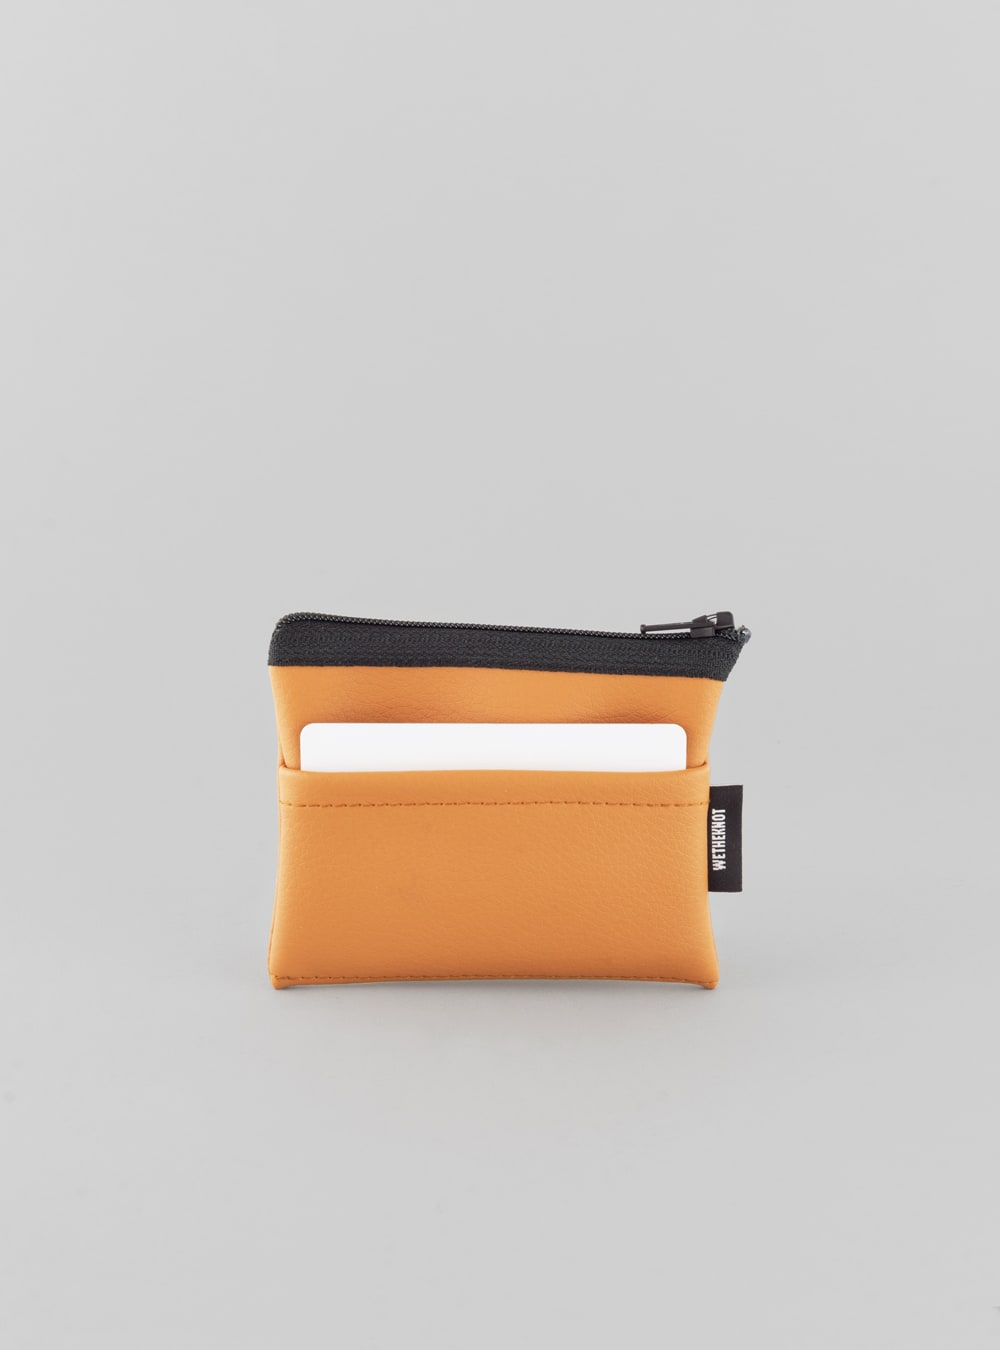 Card holder (honey) in vegan leather, made in Portugal by wetheknot.